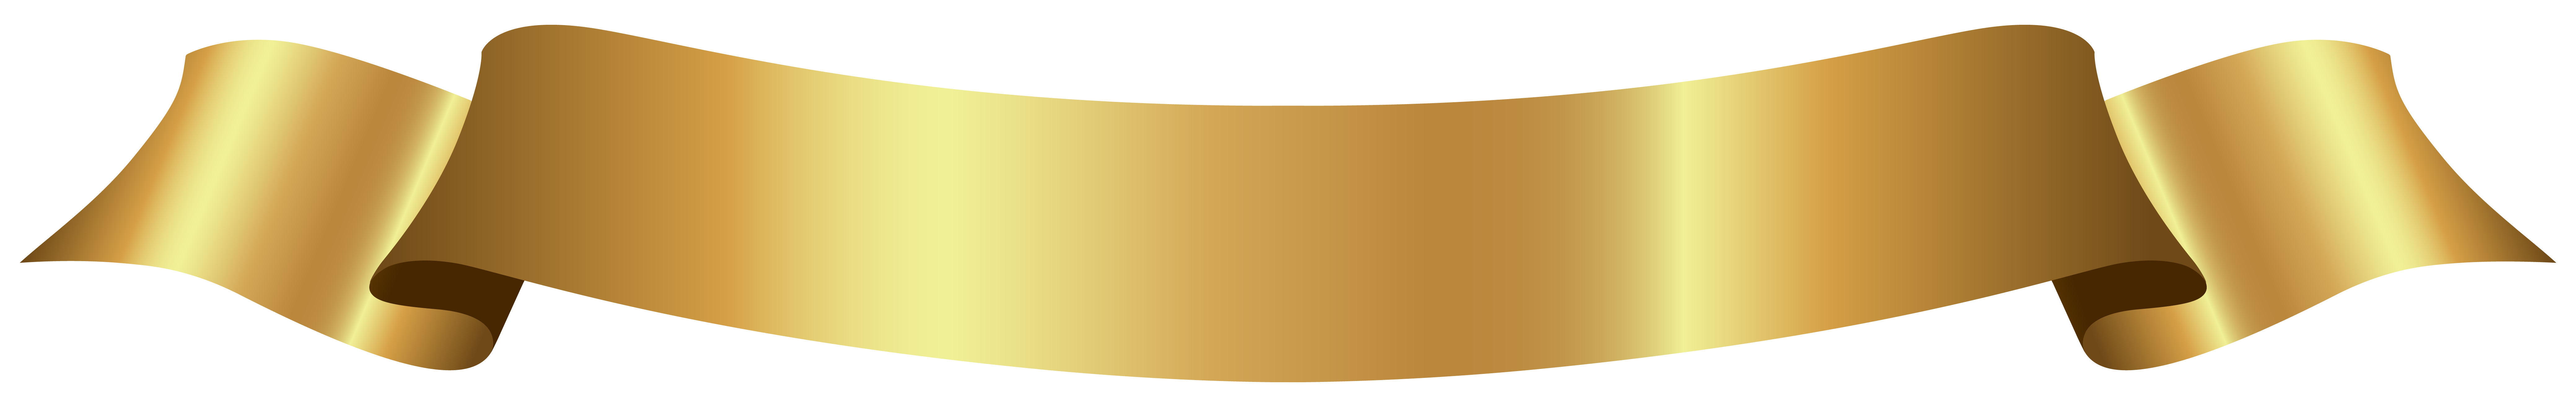 Gold ribbon banner png. Golden clipart image gallery